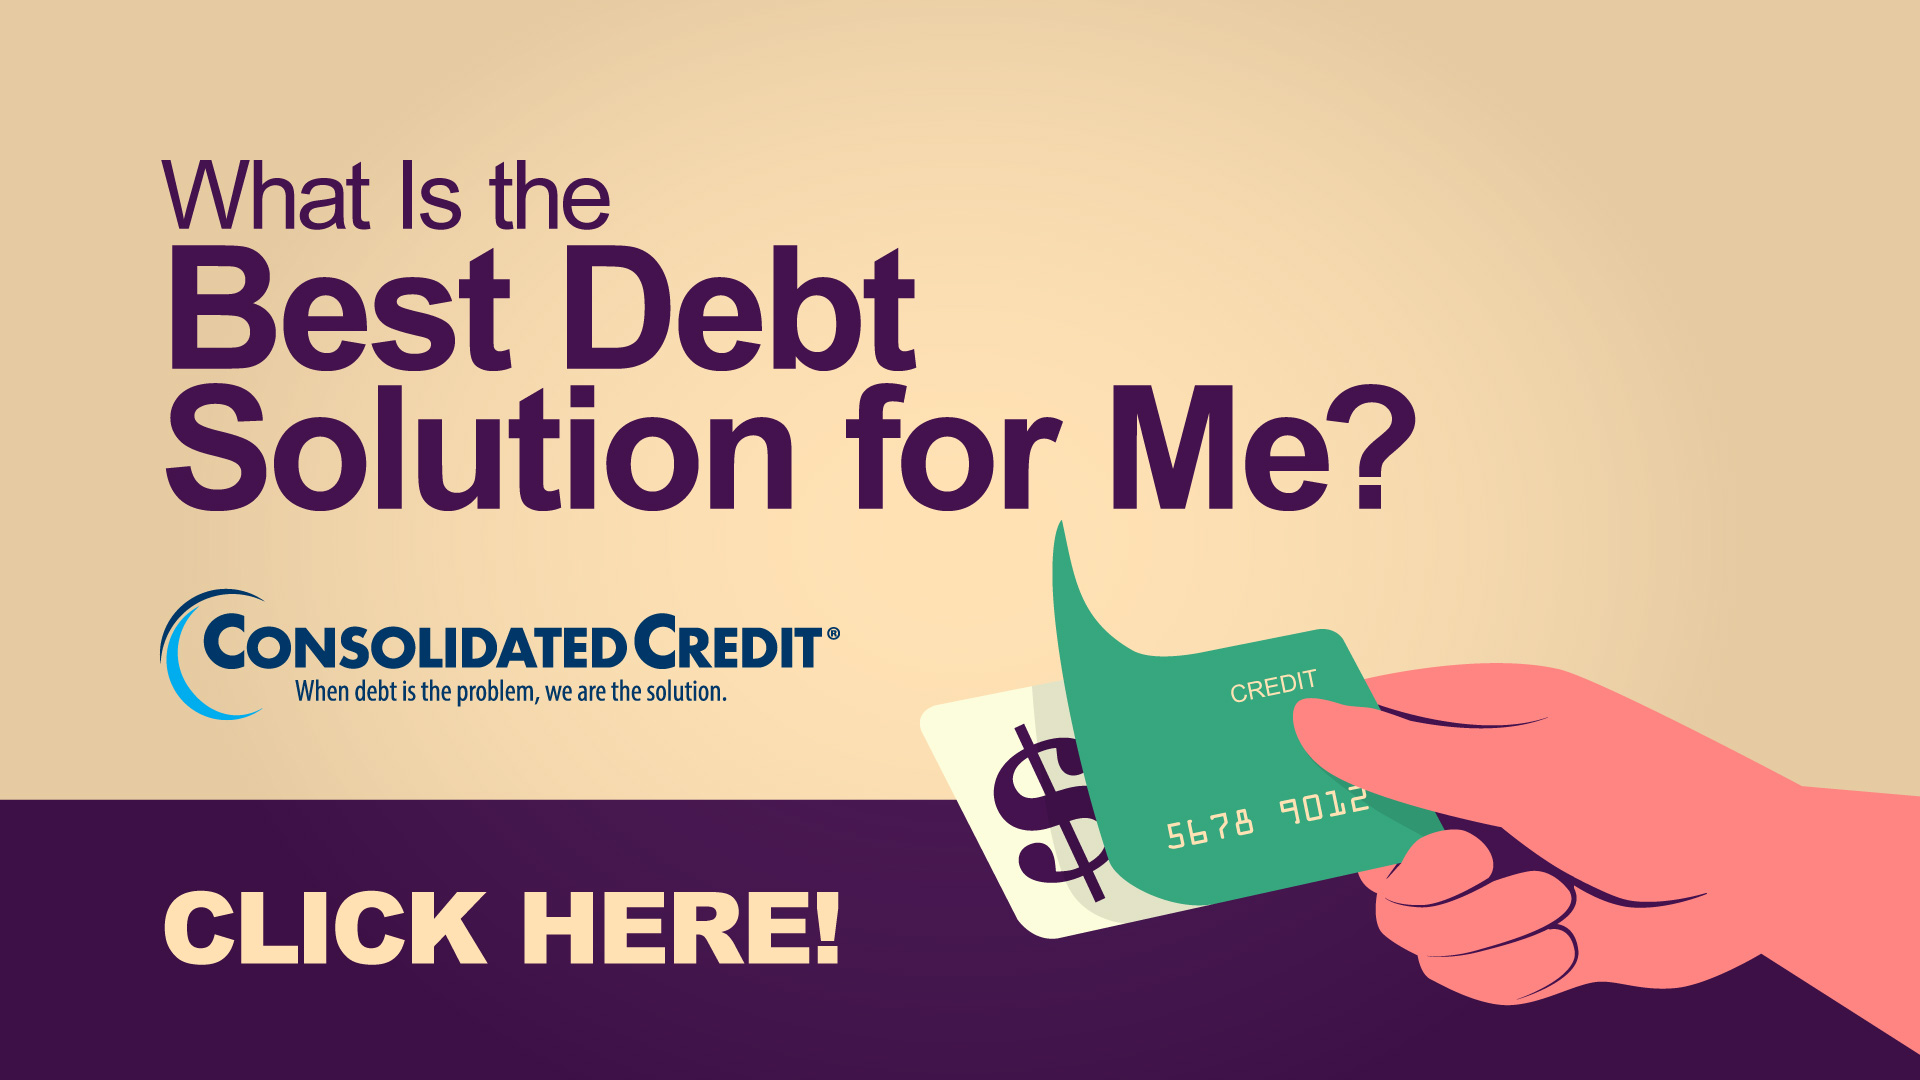 What is the Best Debt Solution for Me? Click Here!